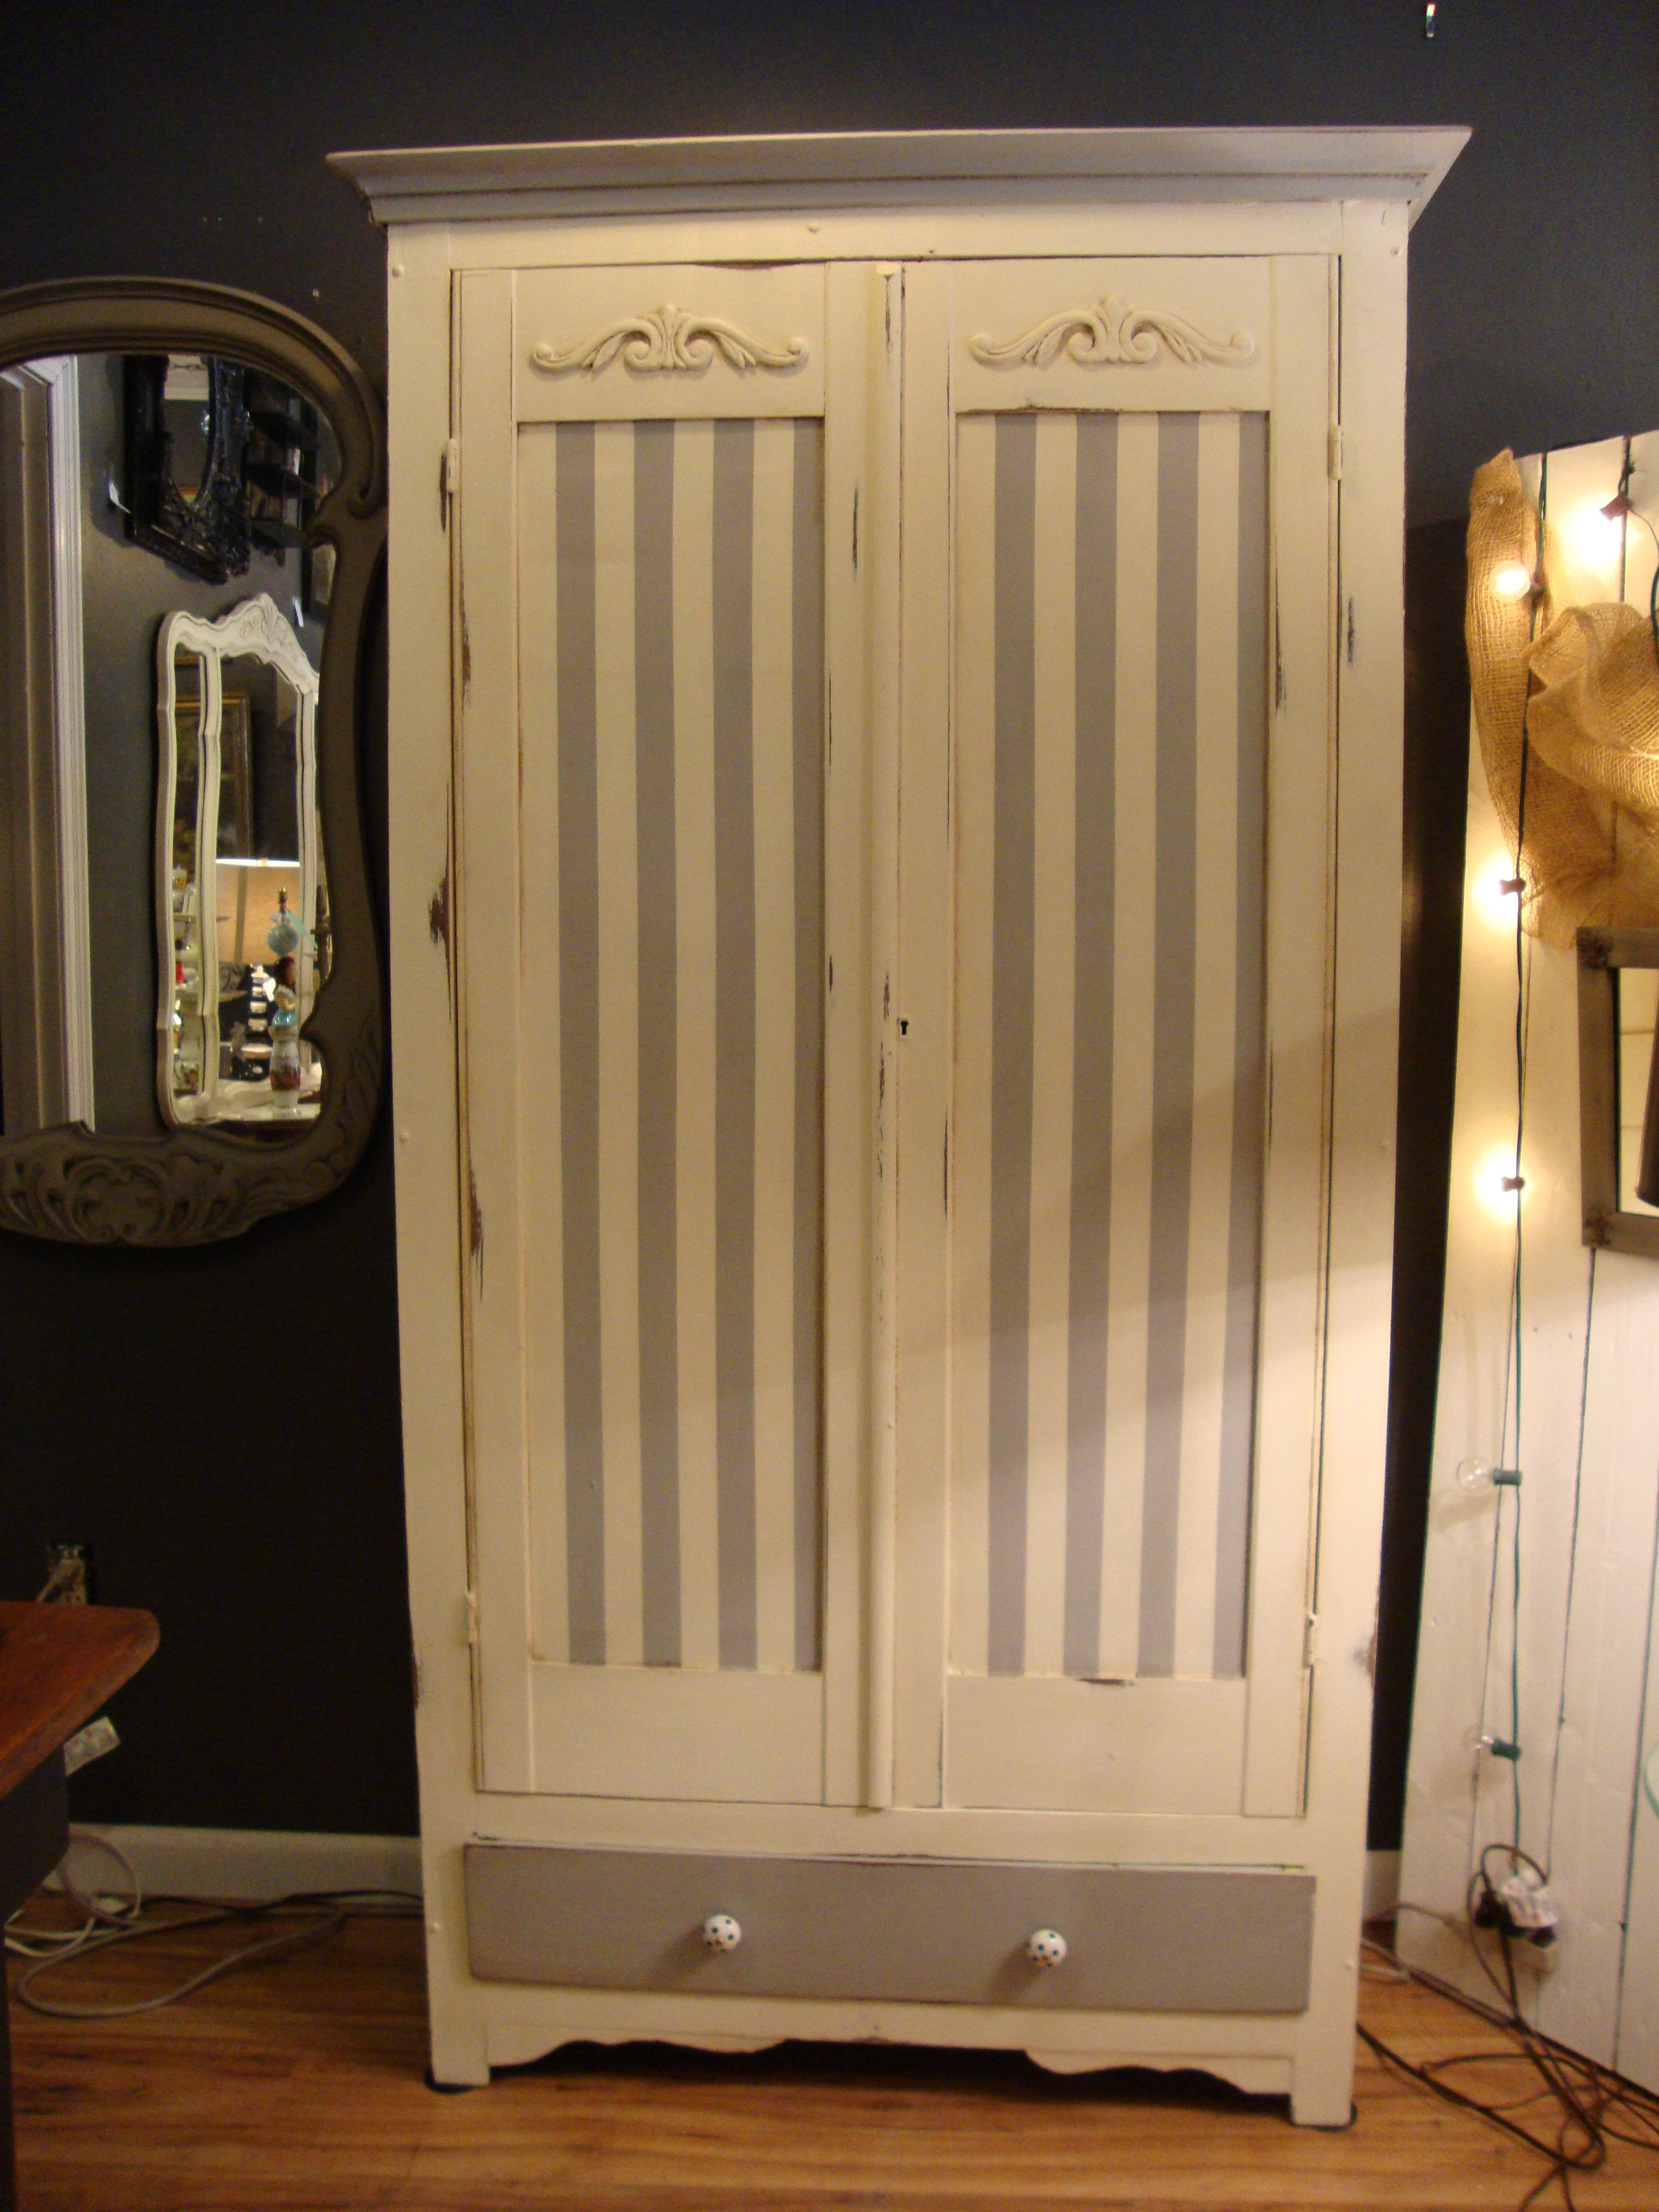 Grey And White Wardrobe This Vintage Wardrobe Found New Life In Painted Grey And